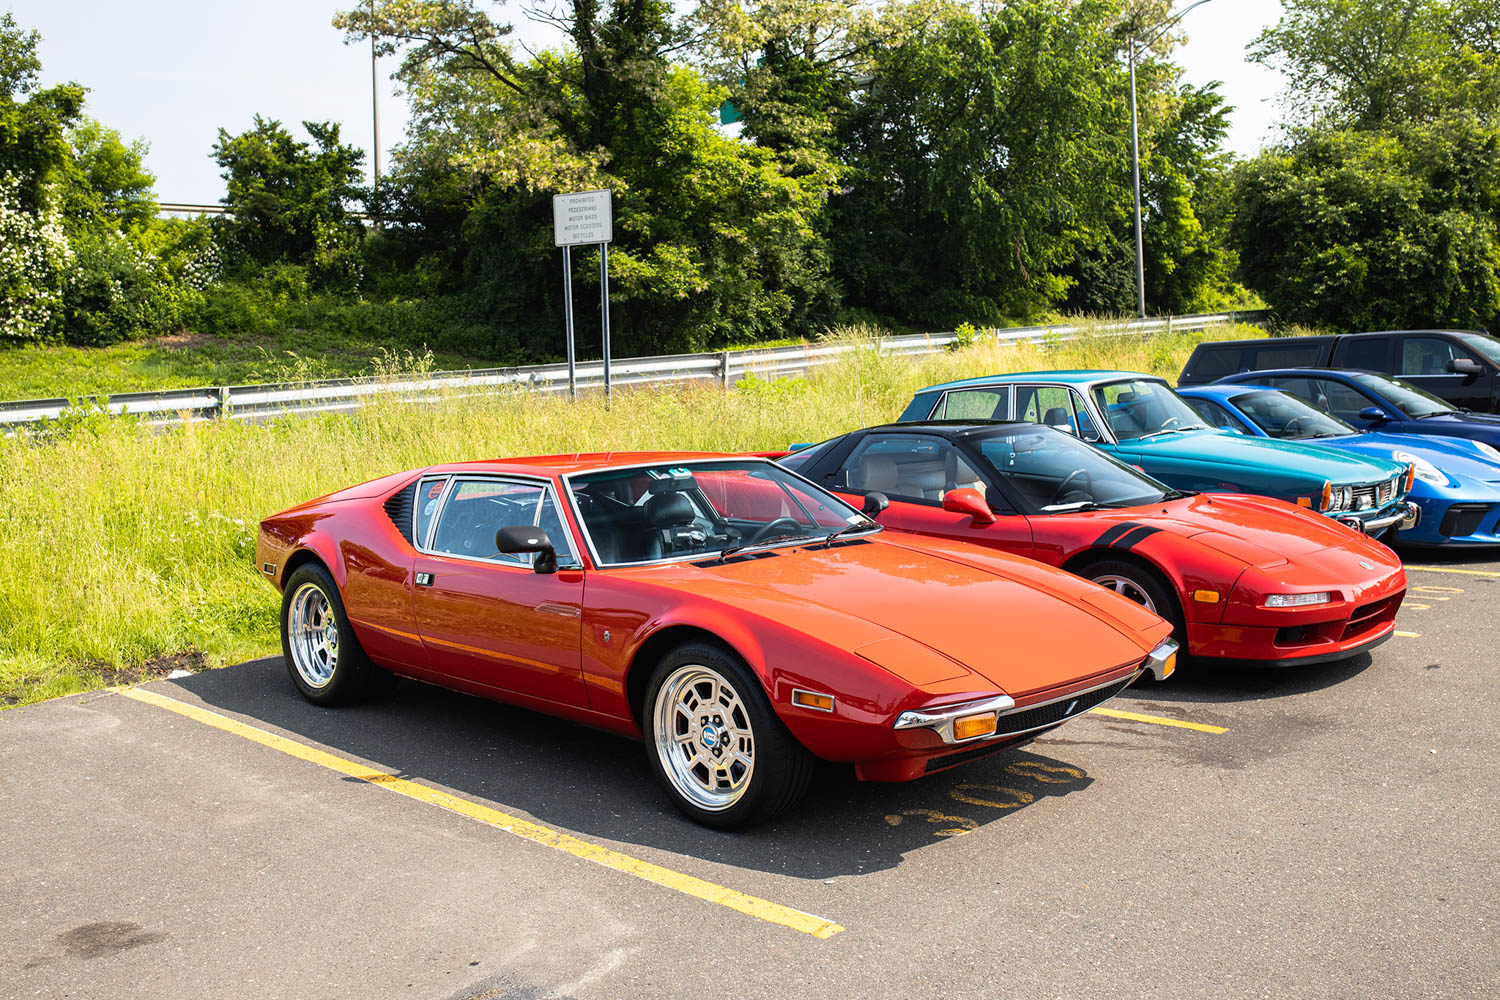 Greenwich Concours parking lot